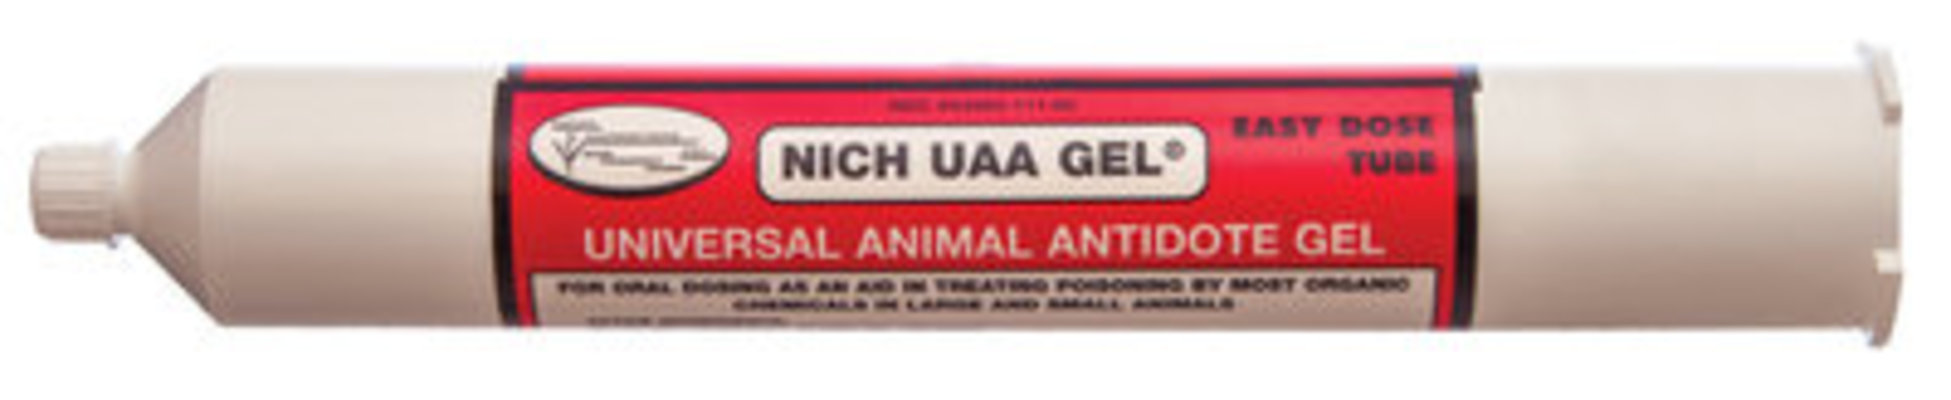 Universal Antidote Gel  (Activated Charcoal, UAA)